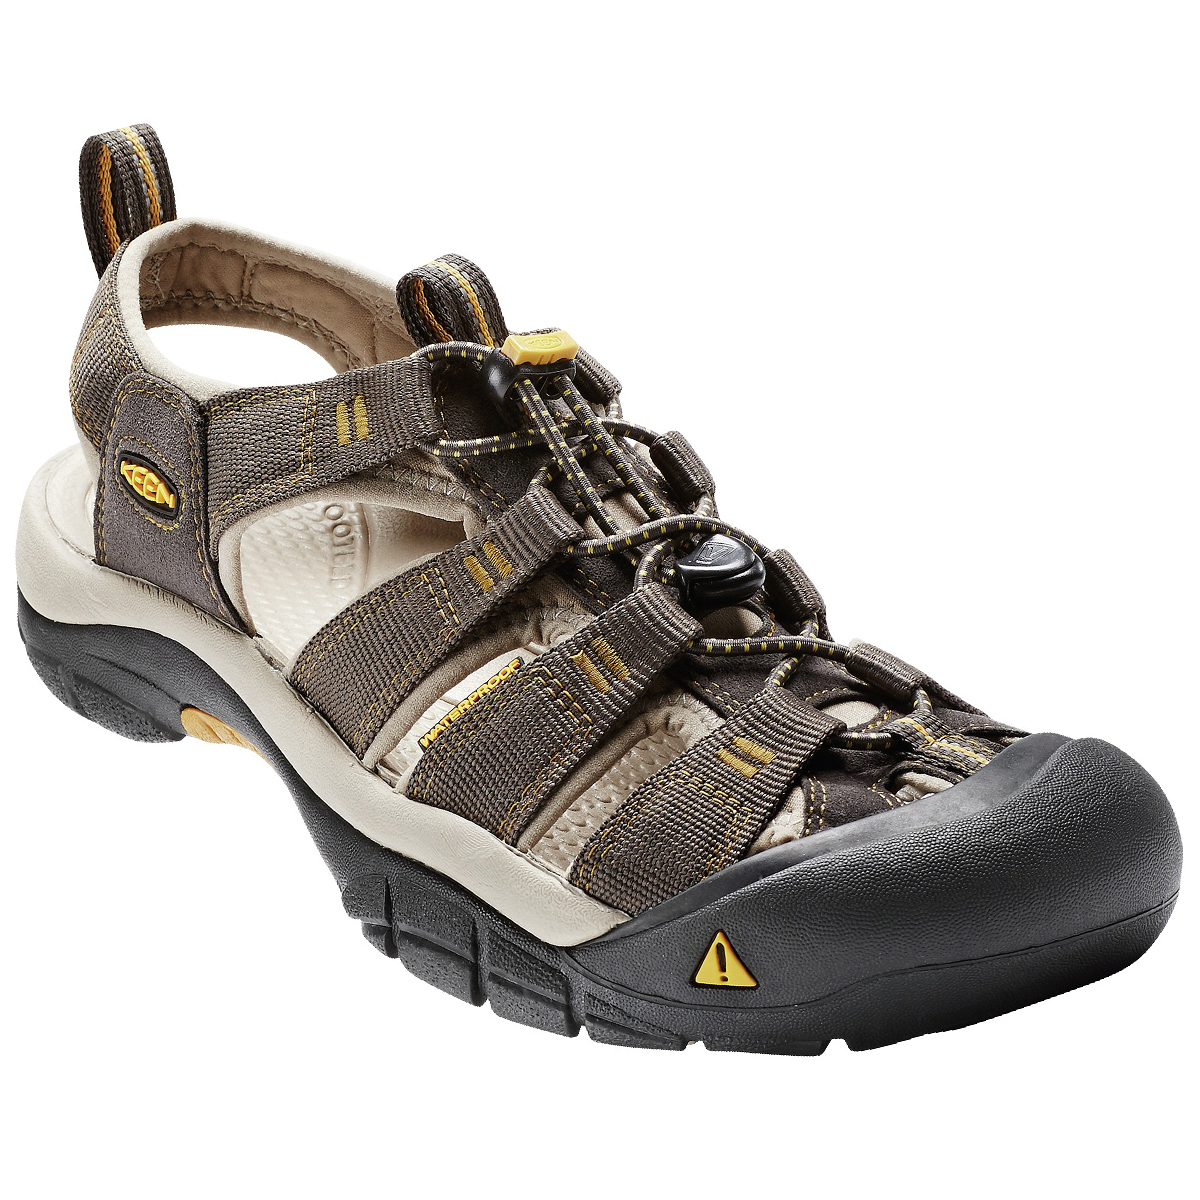 Keen Men's Newport H2 Sandals - Brown, 10.5